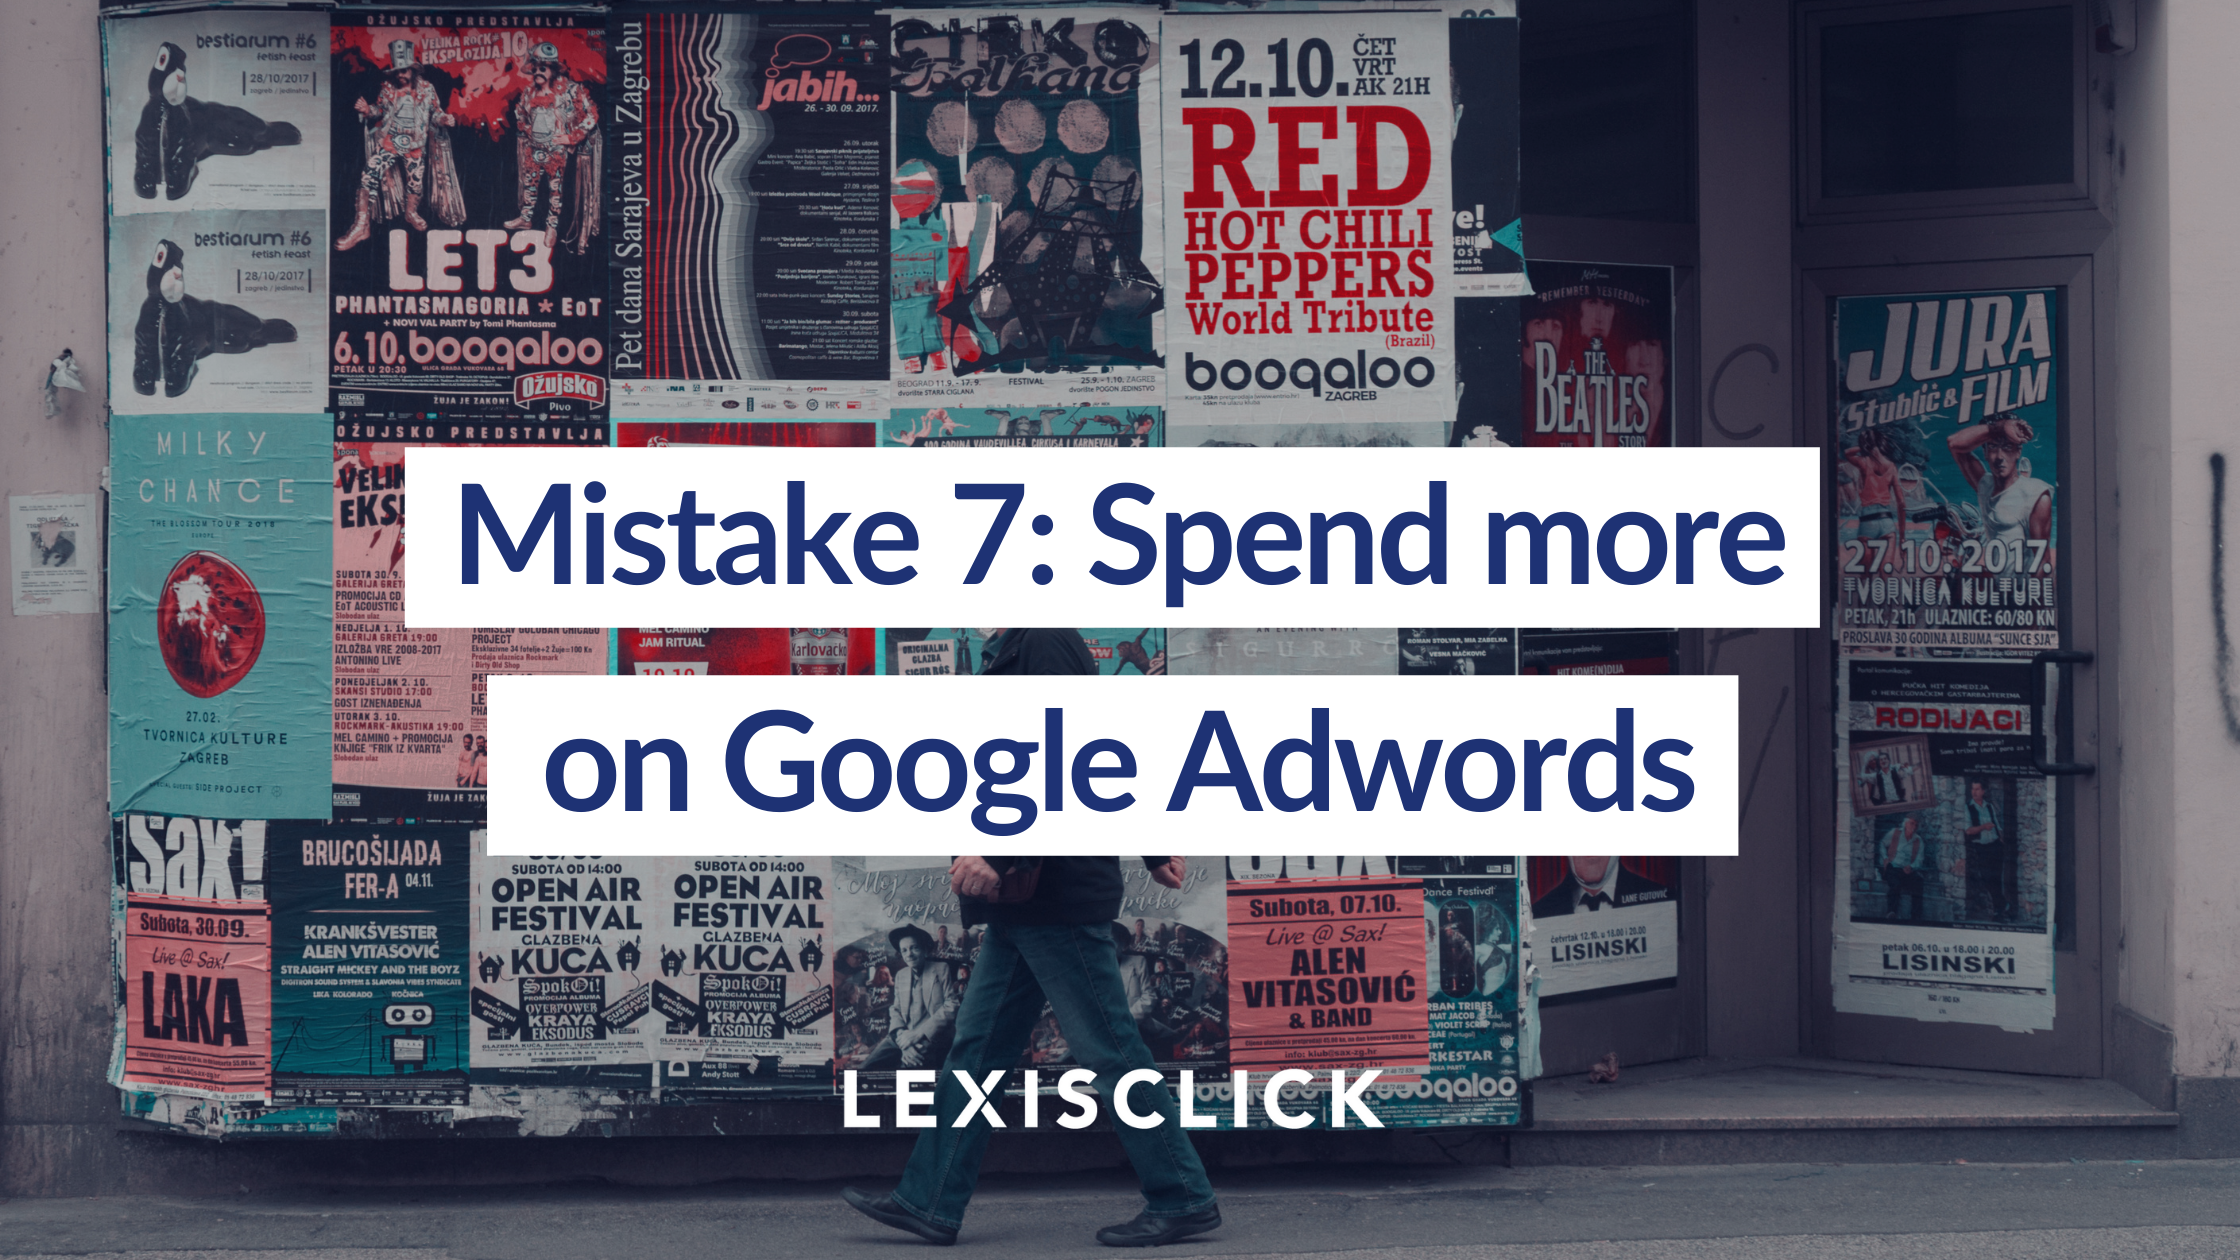 Mistake 7 Spend more on Google Adwords